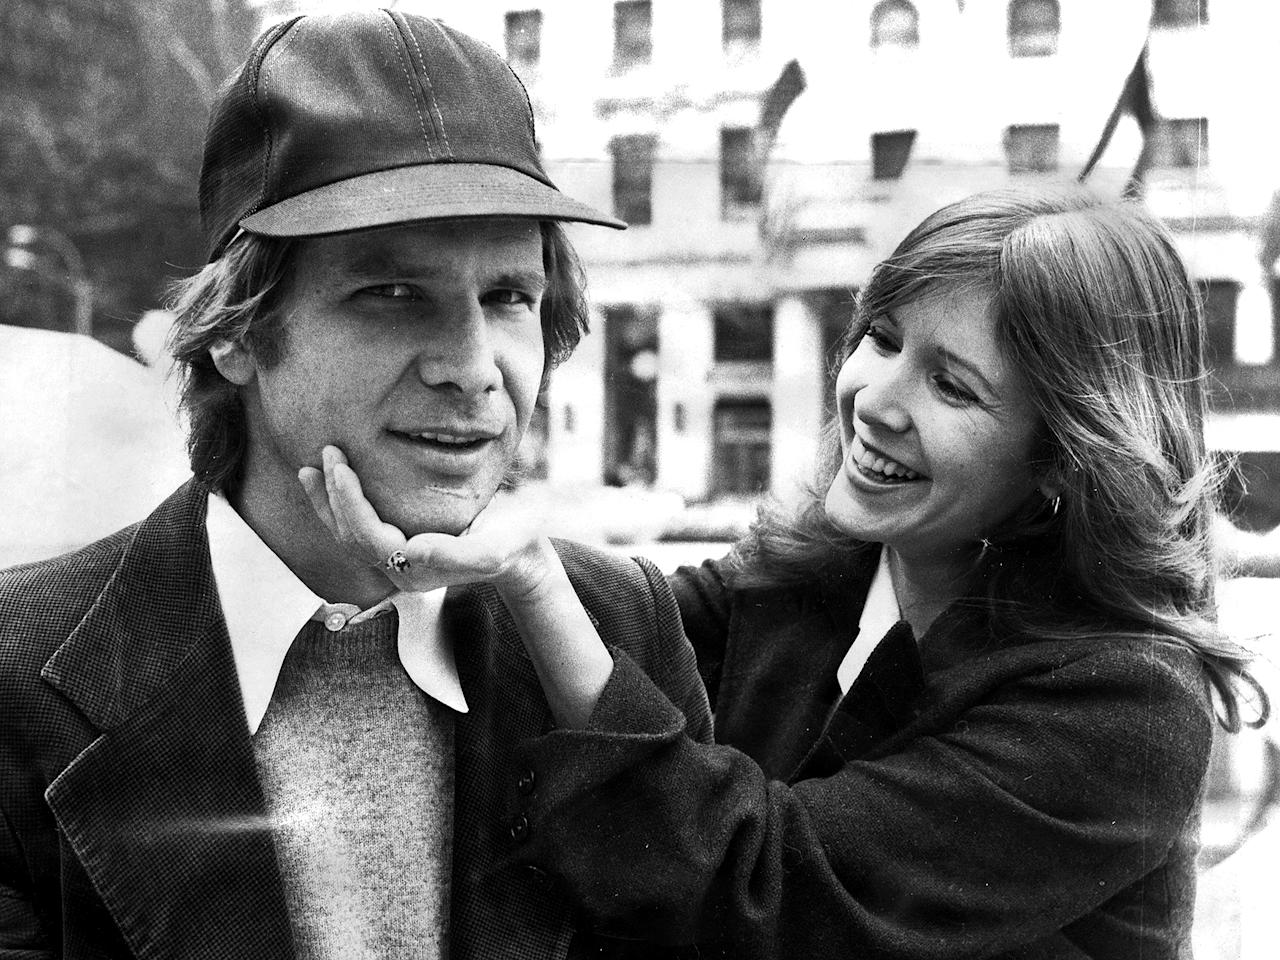 Harrison Ford Breaks Silence on Carrie Fisher's Memoir Detailing Their Star Wars Affair